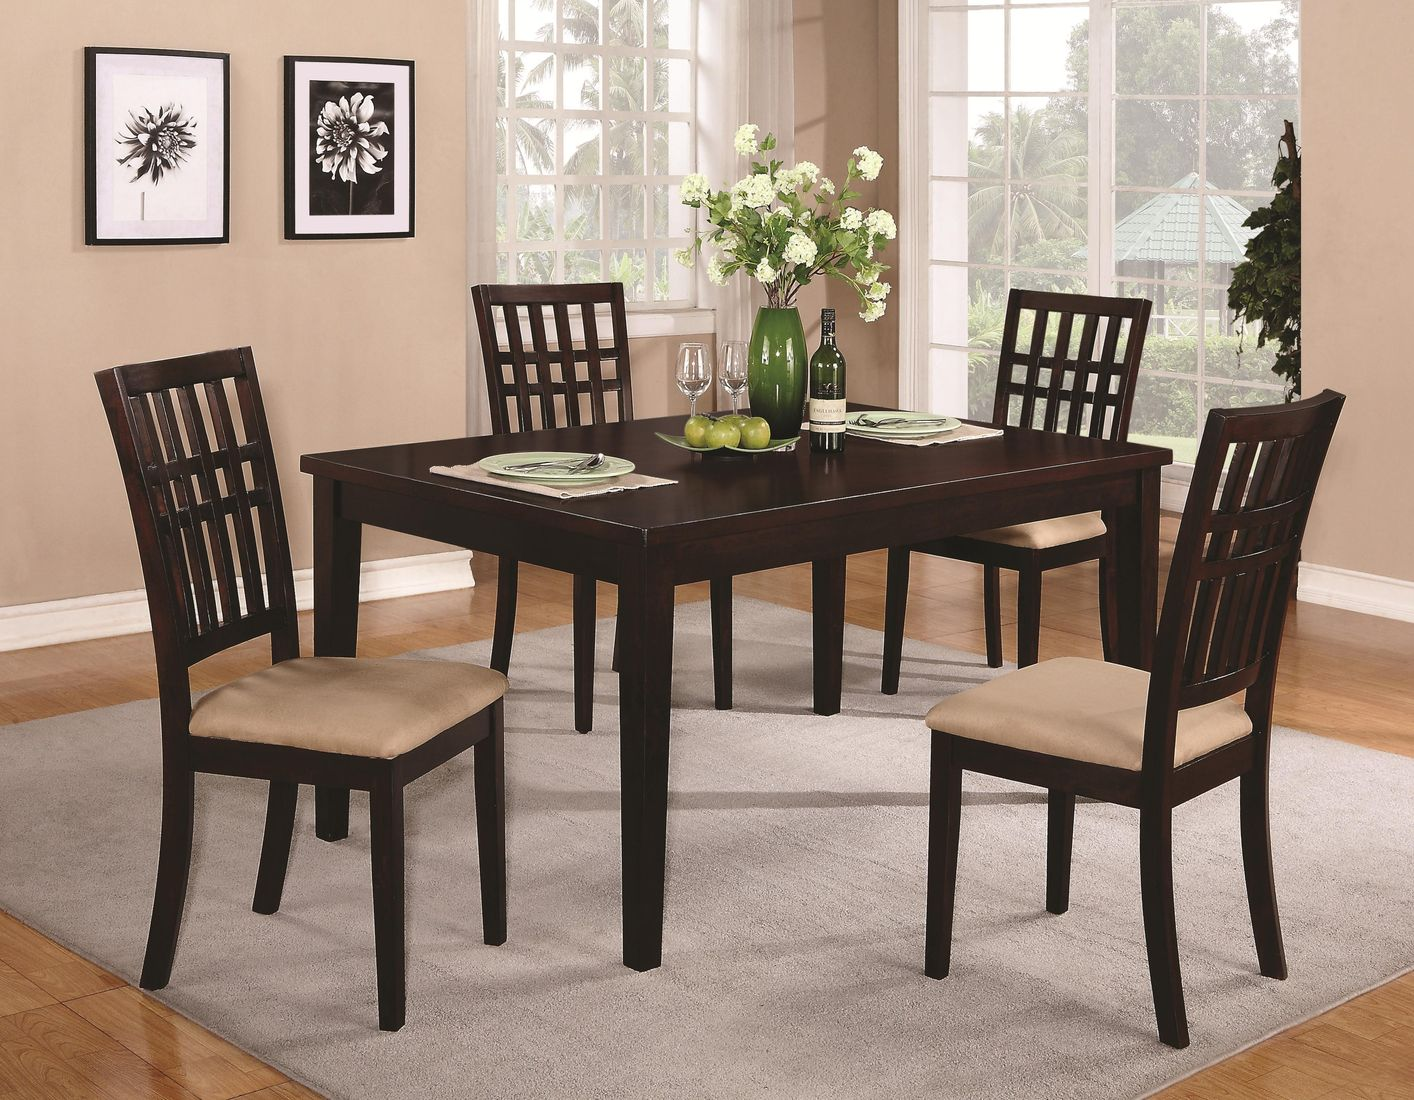 Dark Wood Dining Room Chairs metal dining room set dining dining room sets metal dining table bedroom furniture dark wood dining Brandt Dark Cherry Wood Dining Table